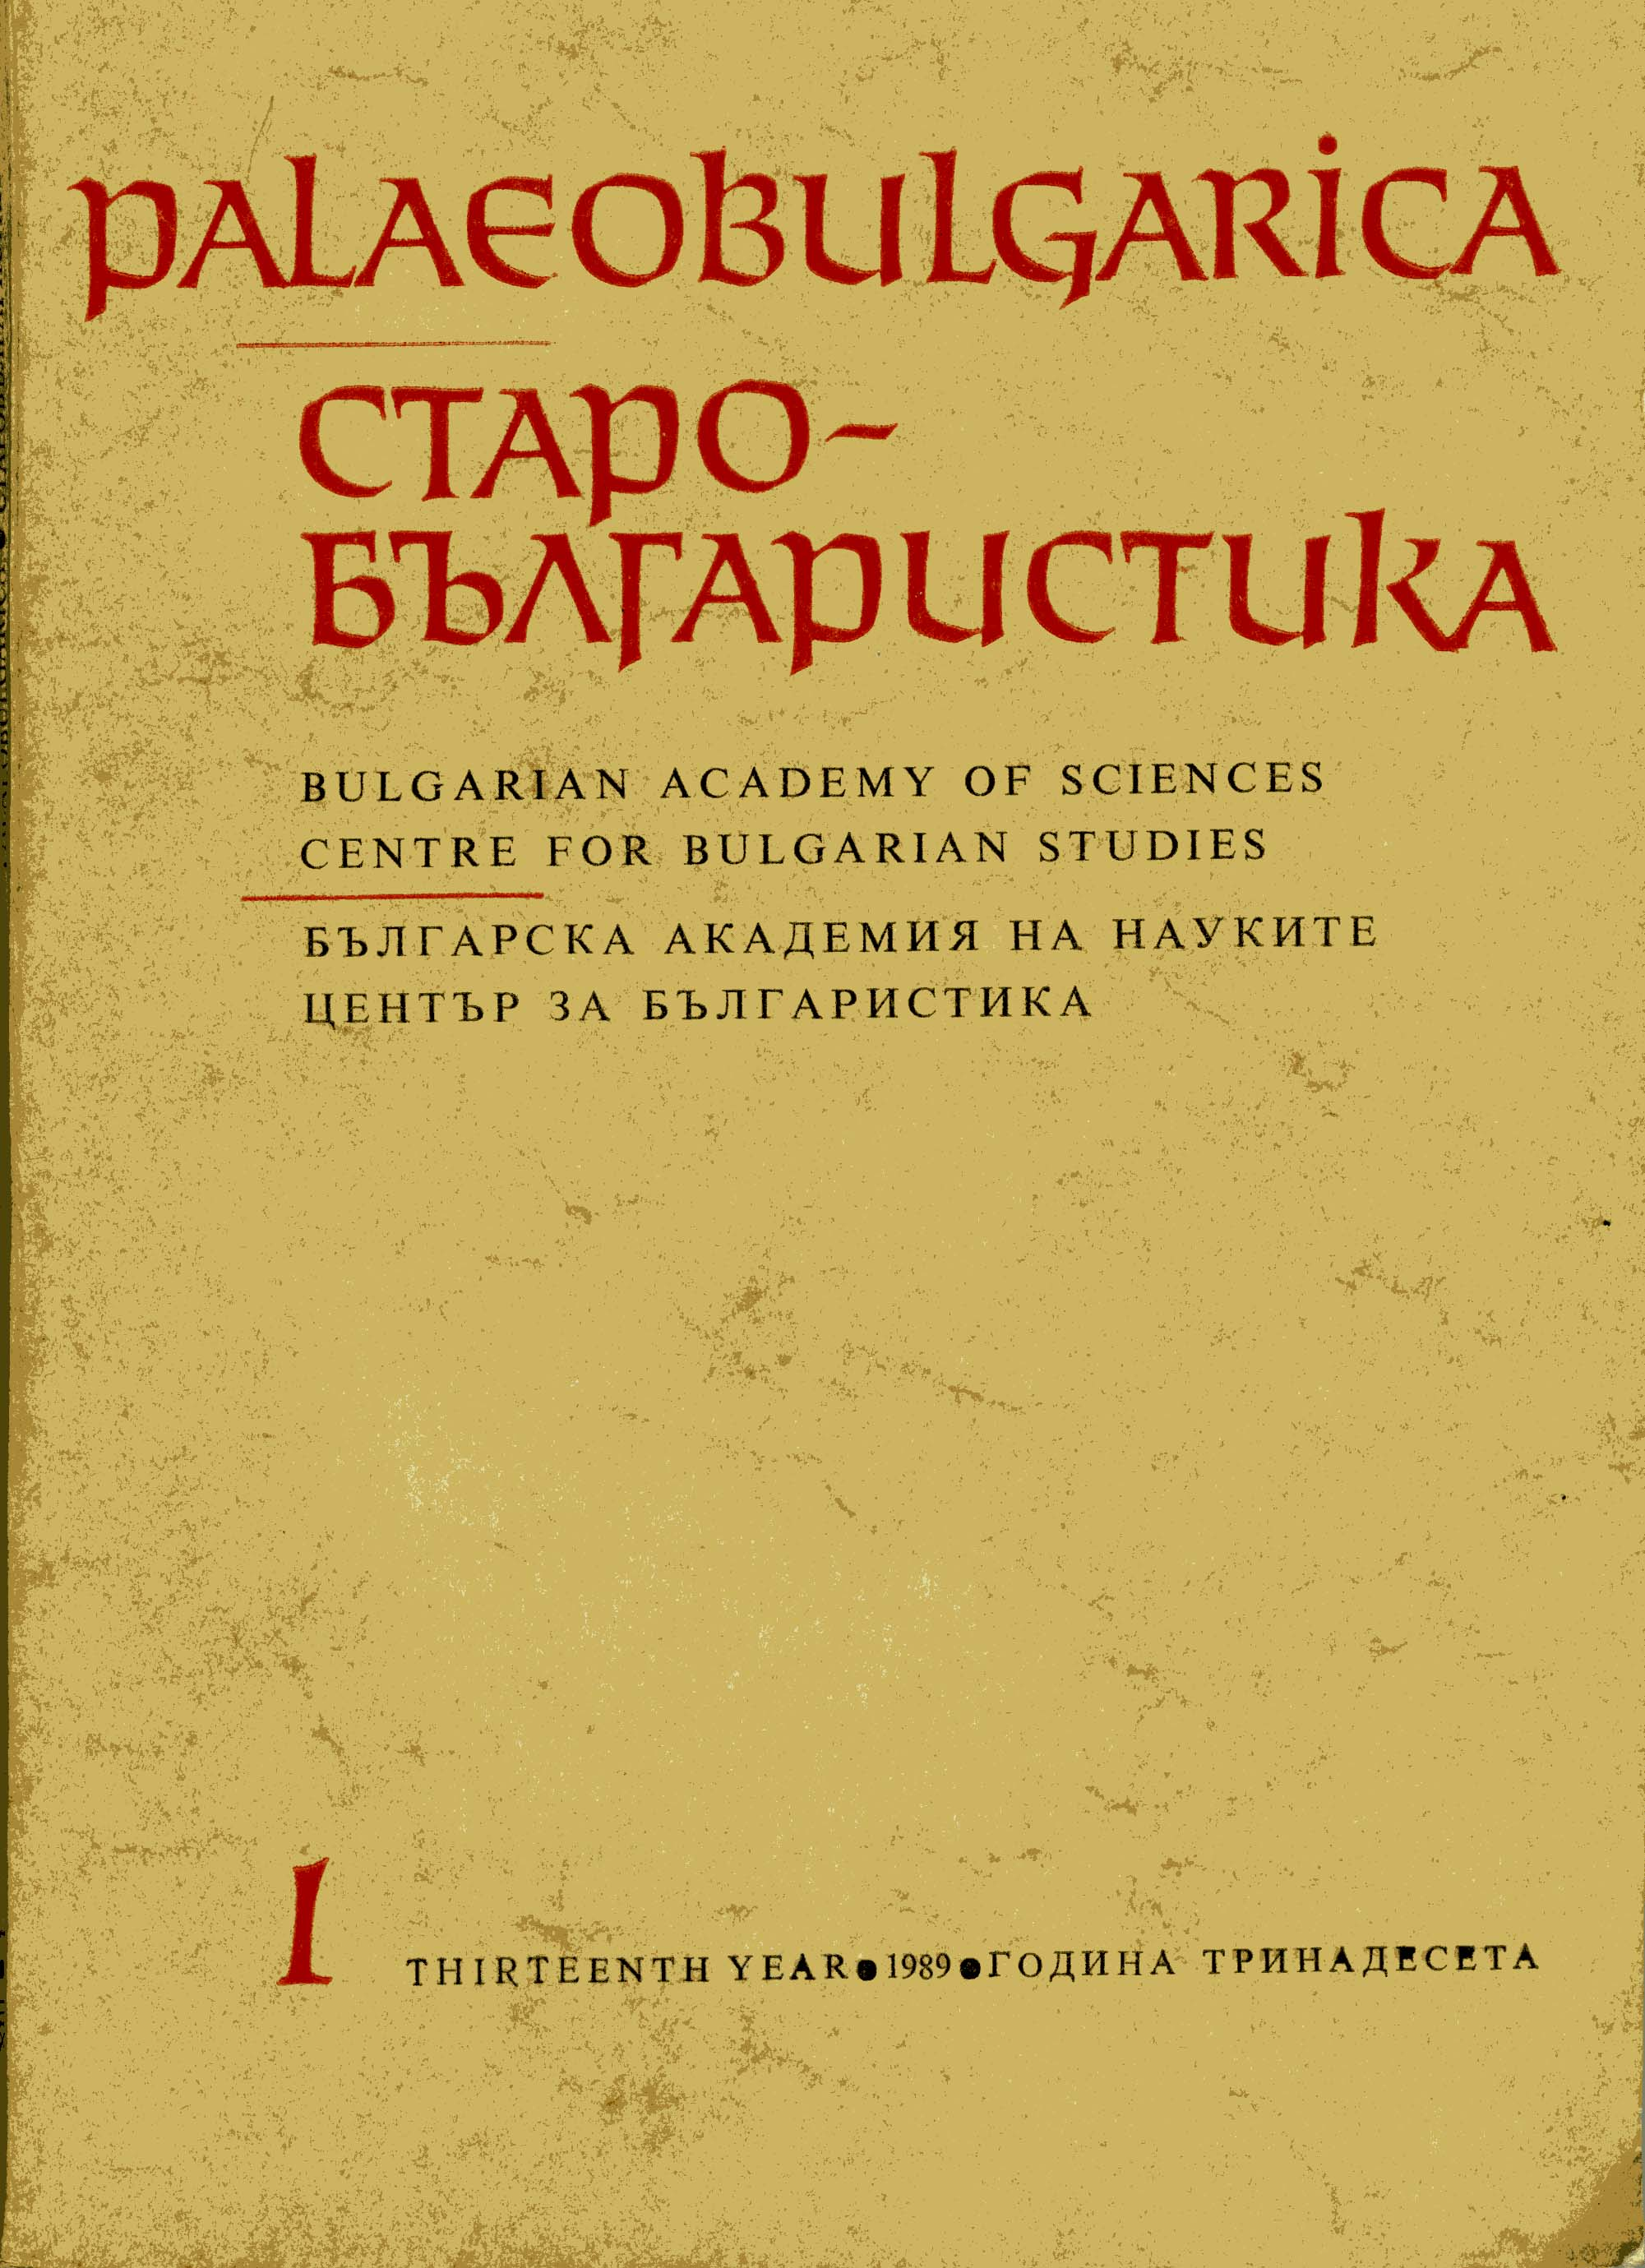 The Linguistic Palaeoslavonic Studies at the 10th International Congress of Slavonic Scholars Cover Image